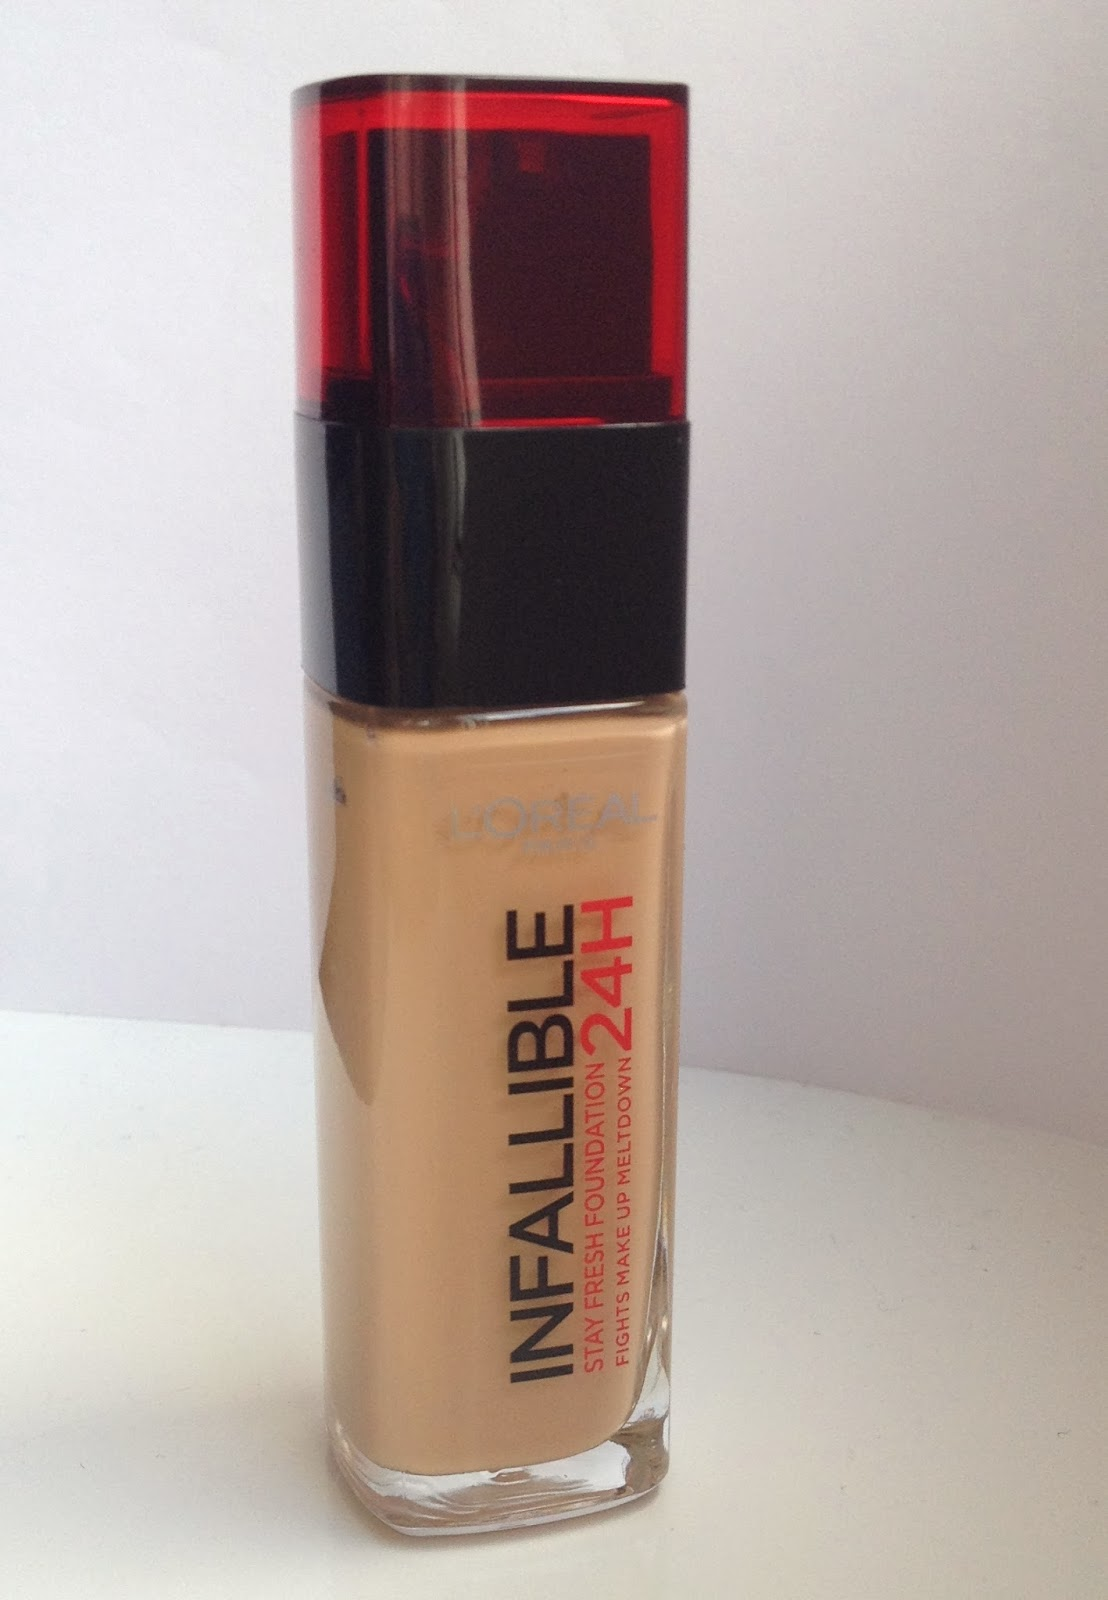 L'Oreal-Paris-Infallible-stay-fresh-24-hour-foundation-review